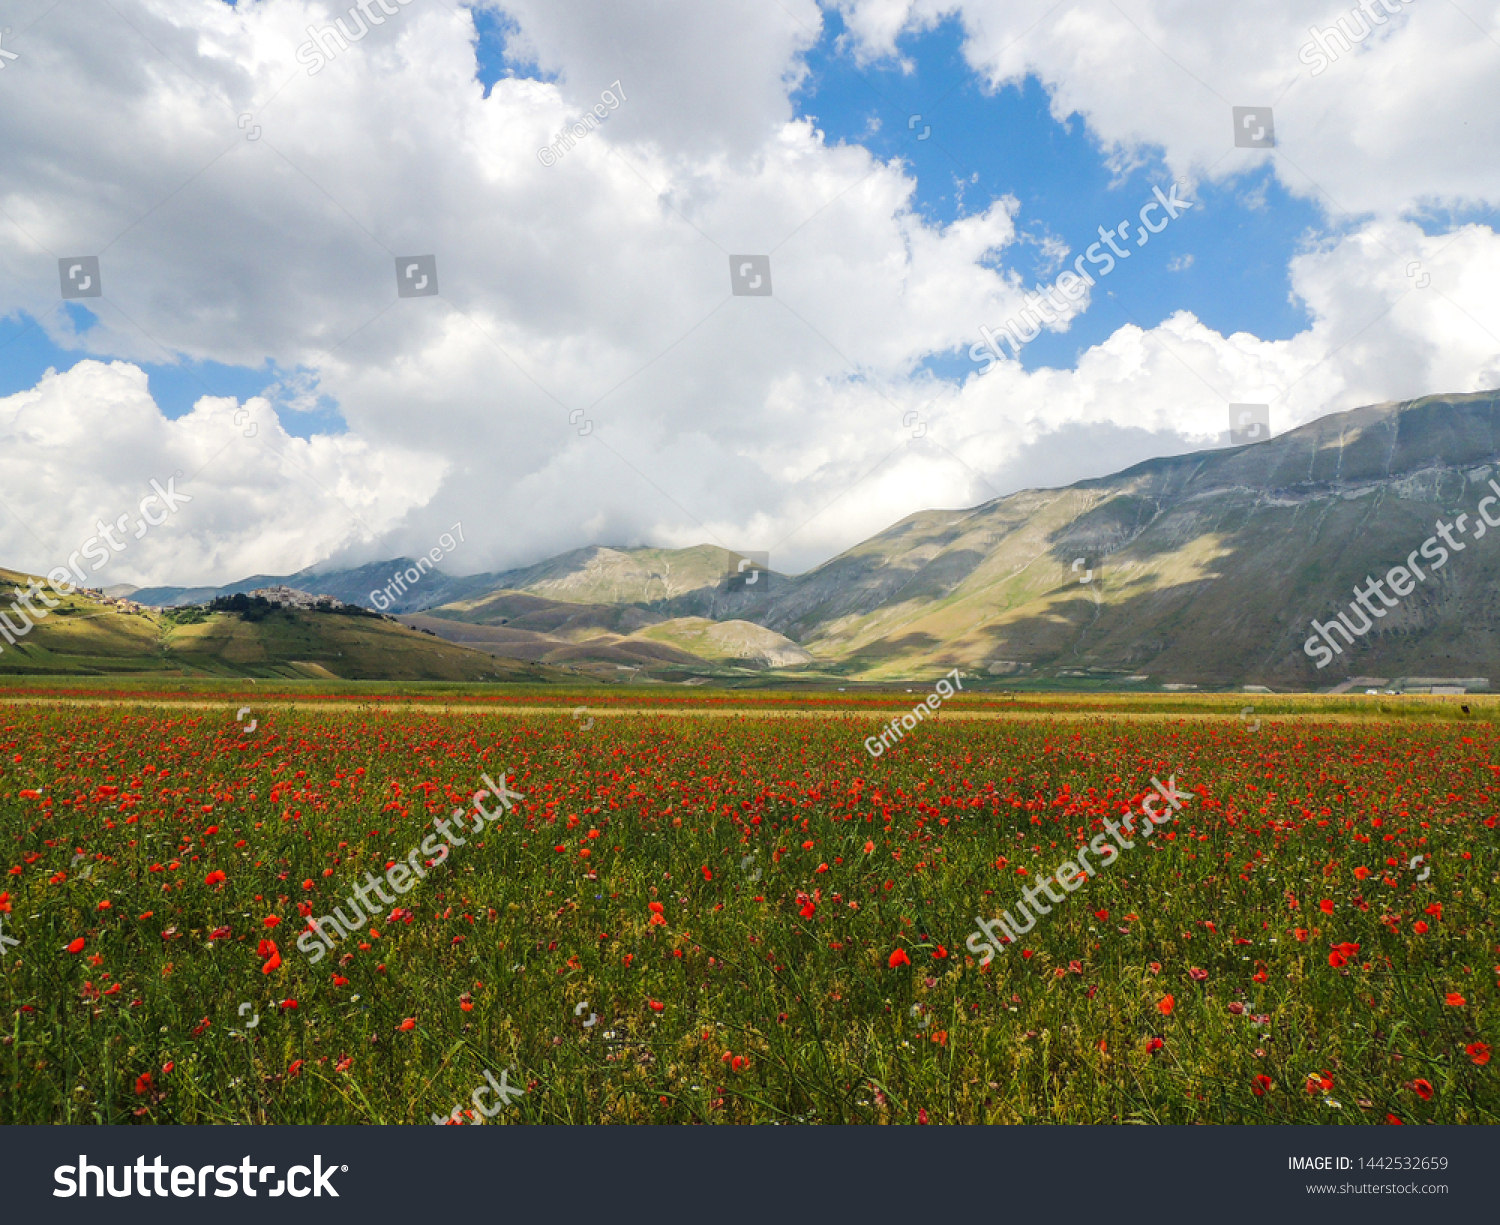 Flowering of lentils in Castelluccio di Norcia, Umbria, Italy.